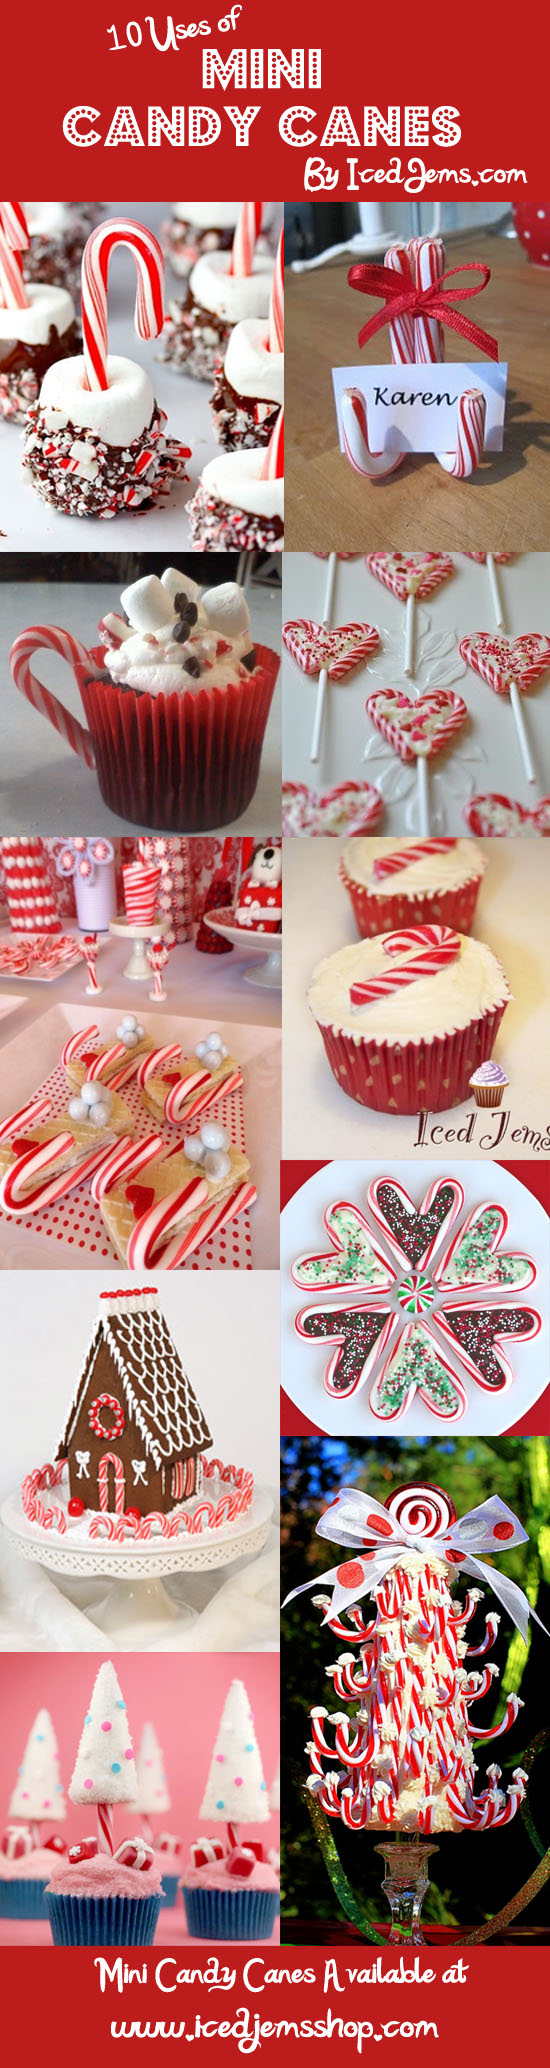 Uses of Candy Canes